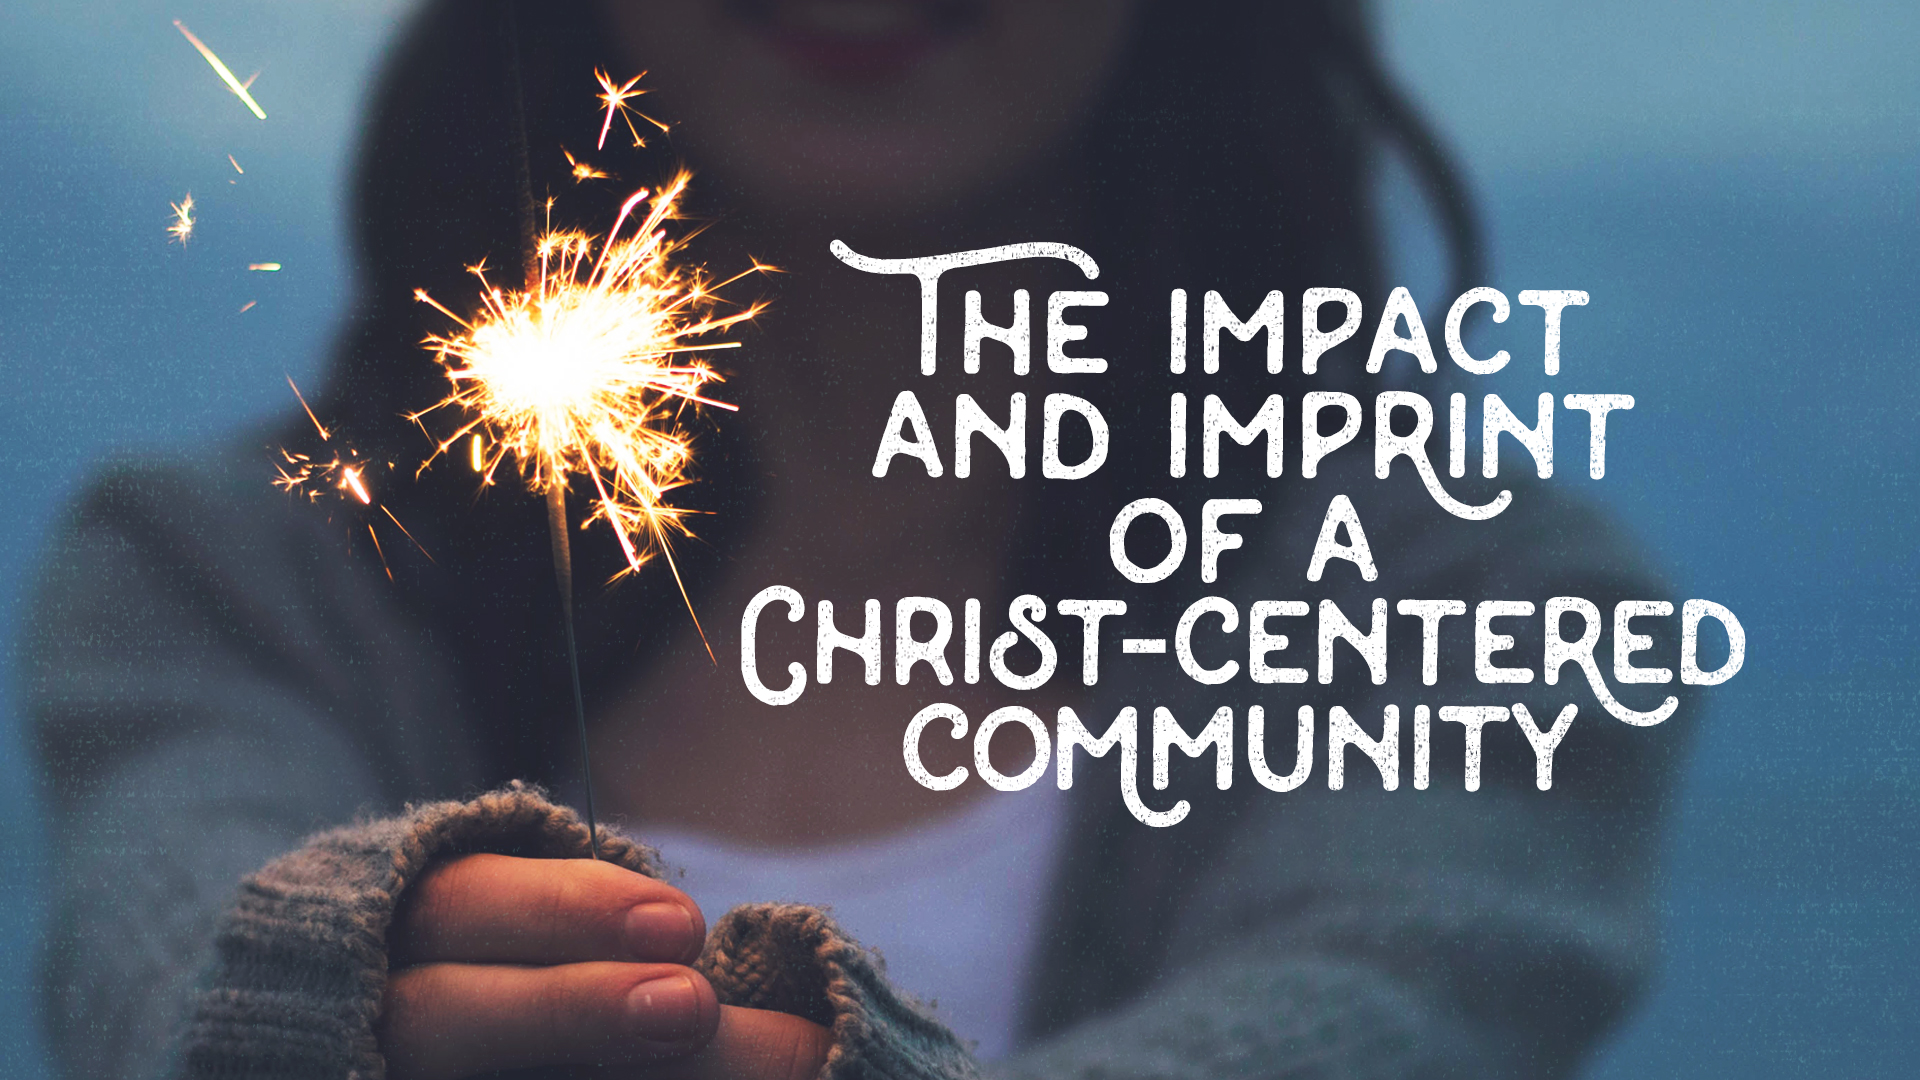 The Impact and Imprint of a Christ-centered Community